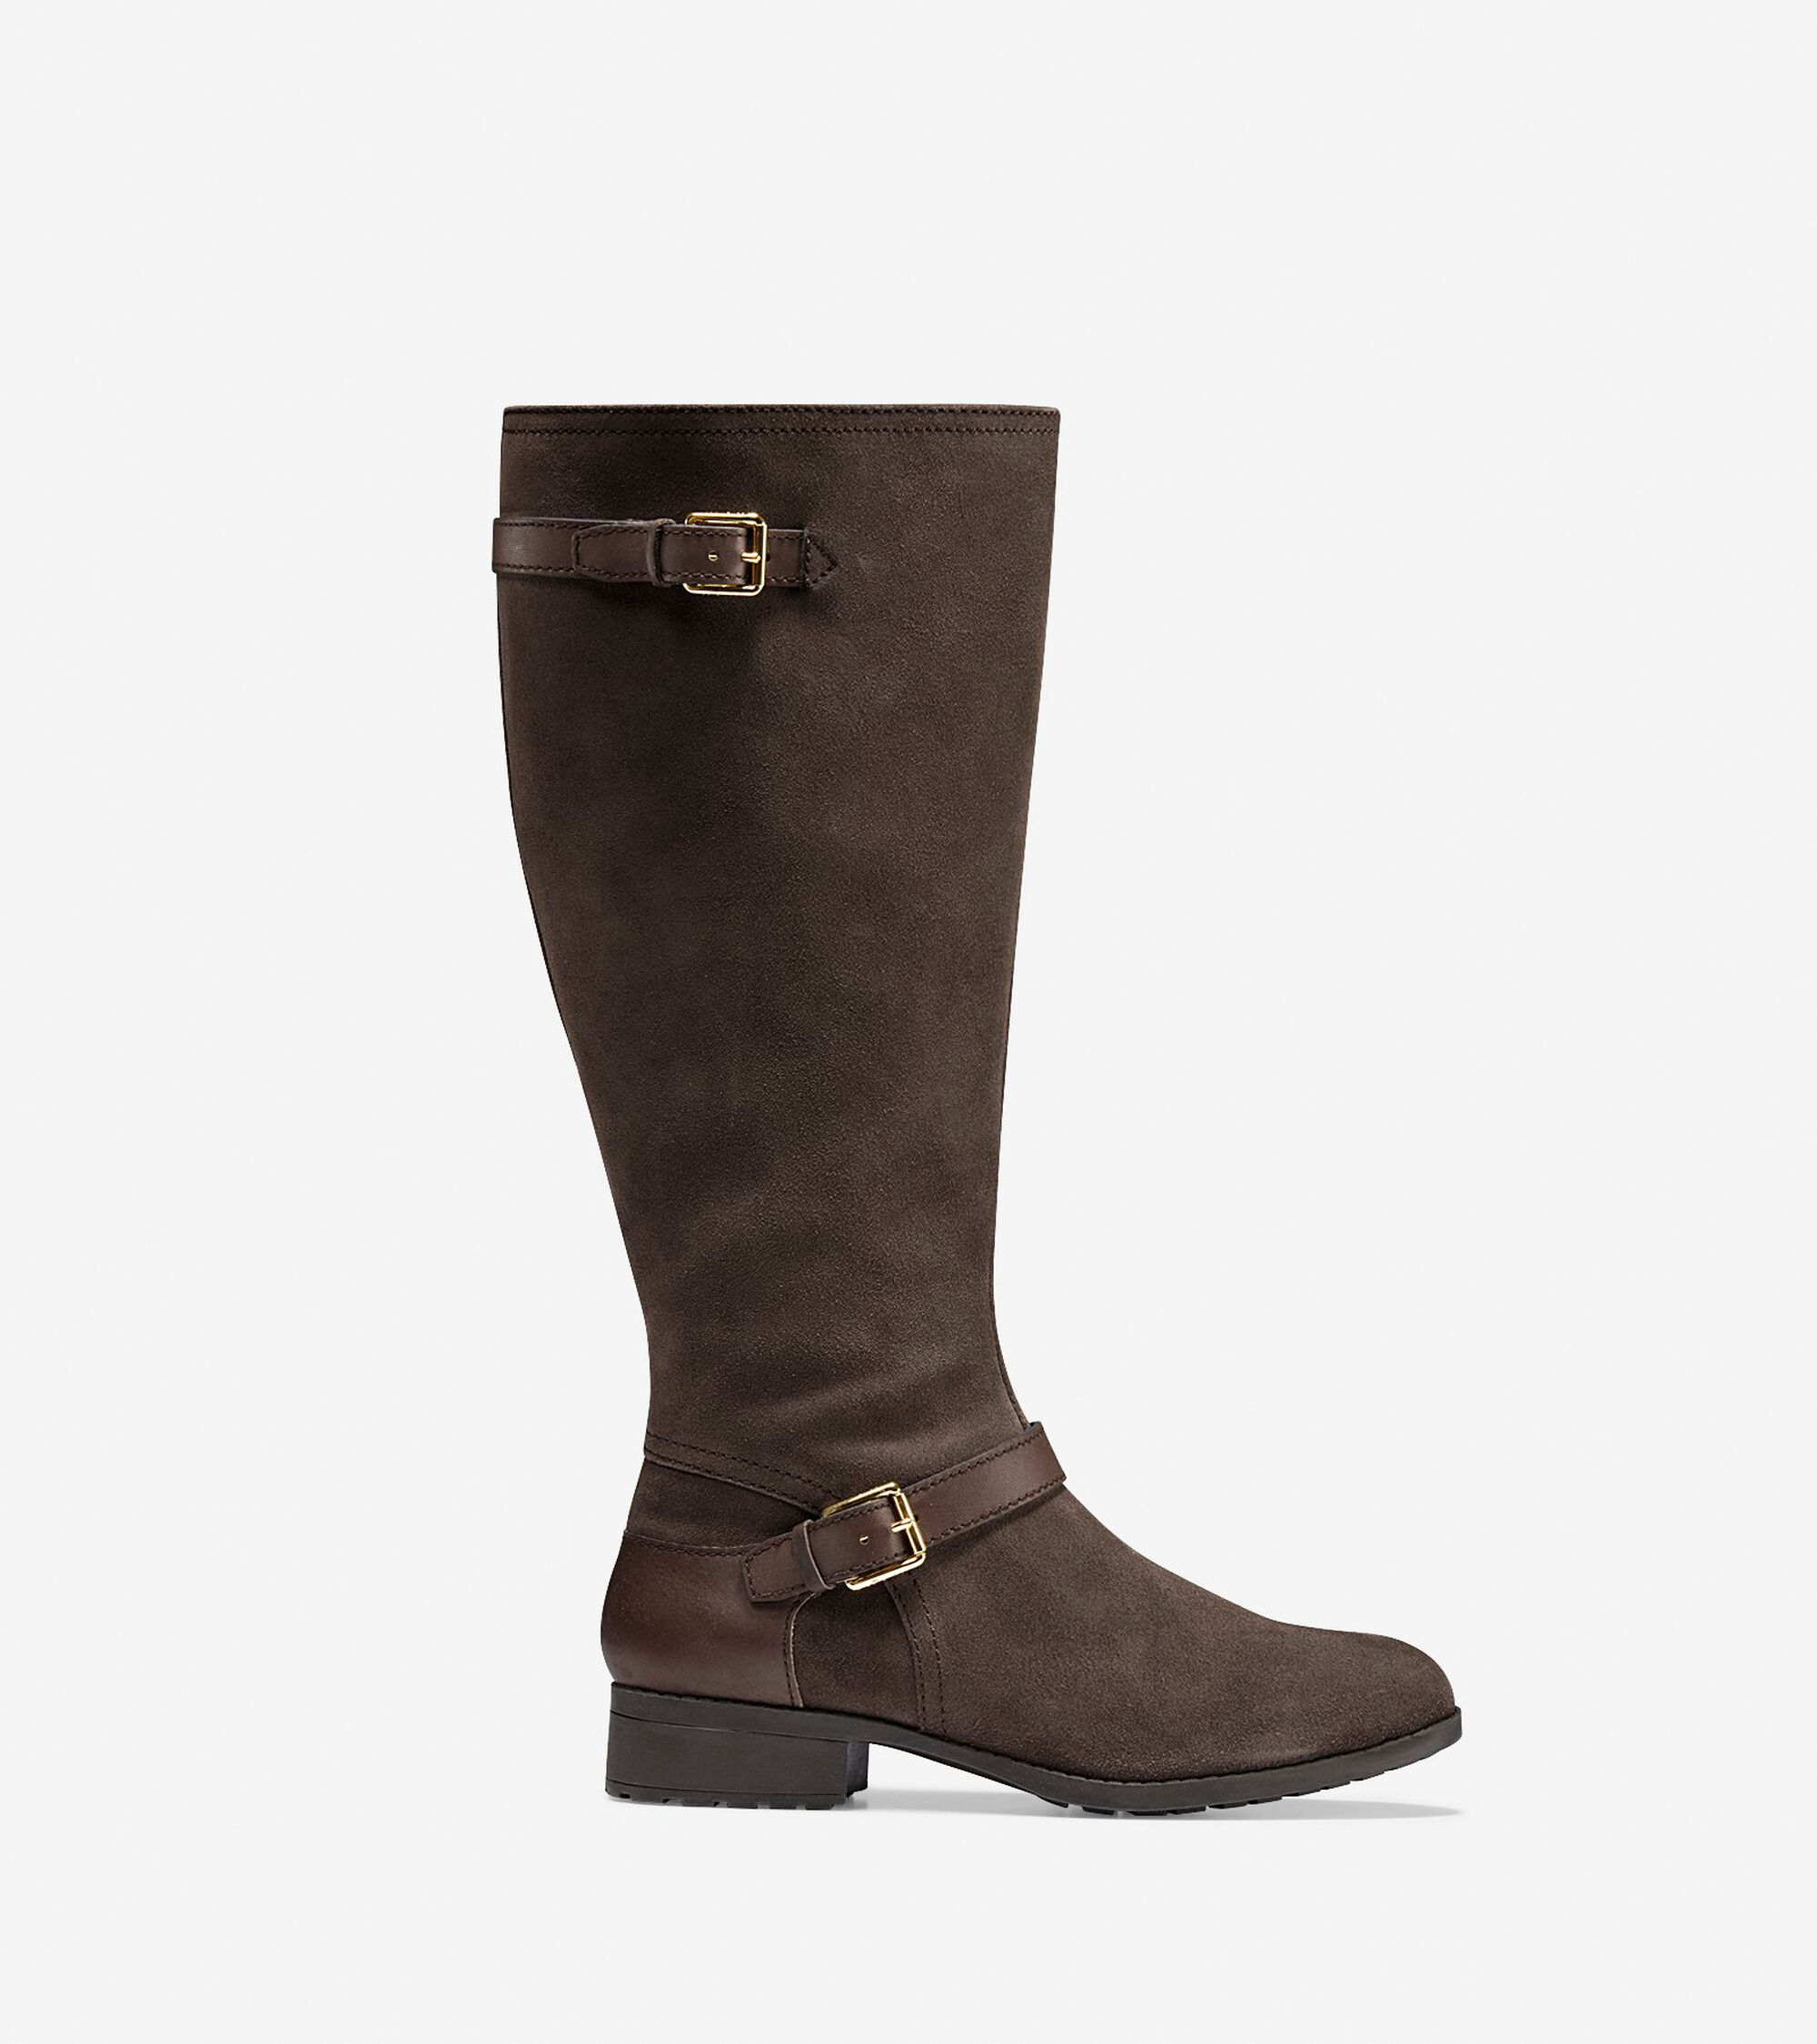 Cole Haan Womens Marla Waterproof Tall (30 mm) Extended Calf Boots